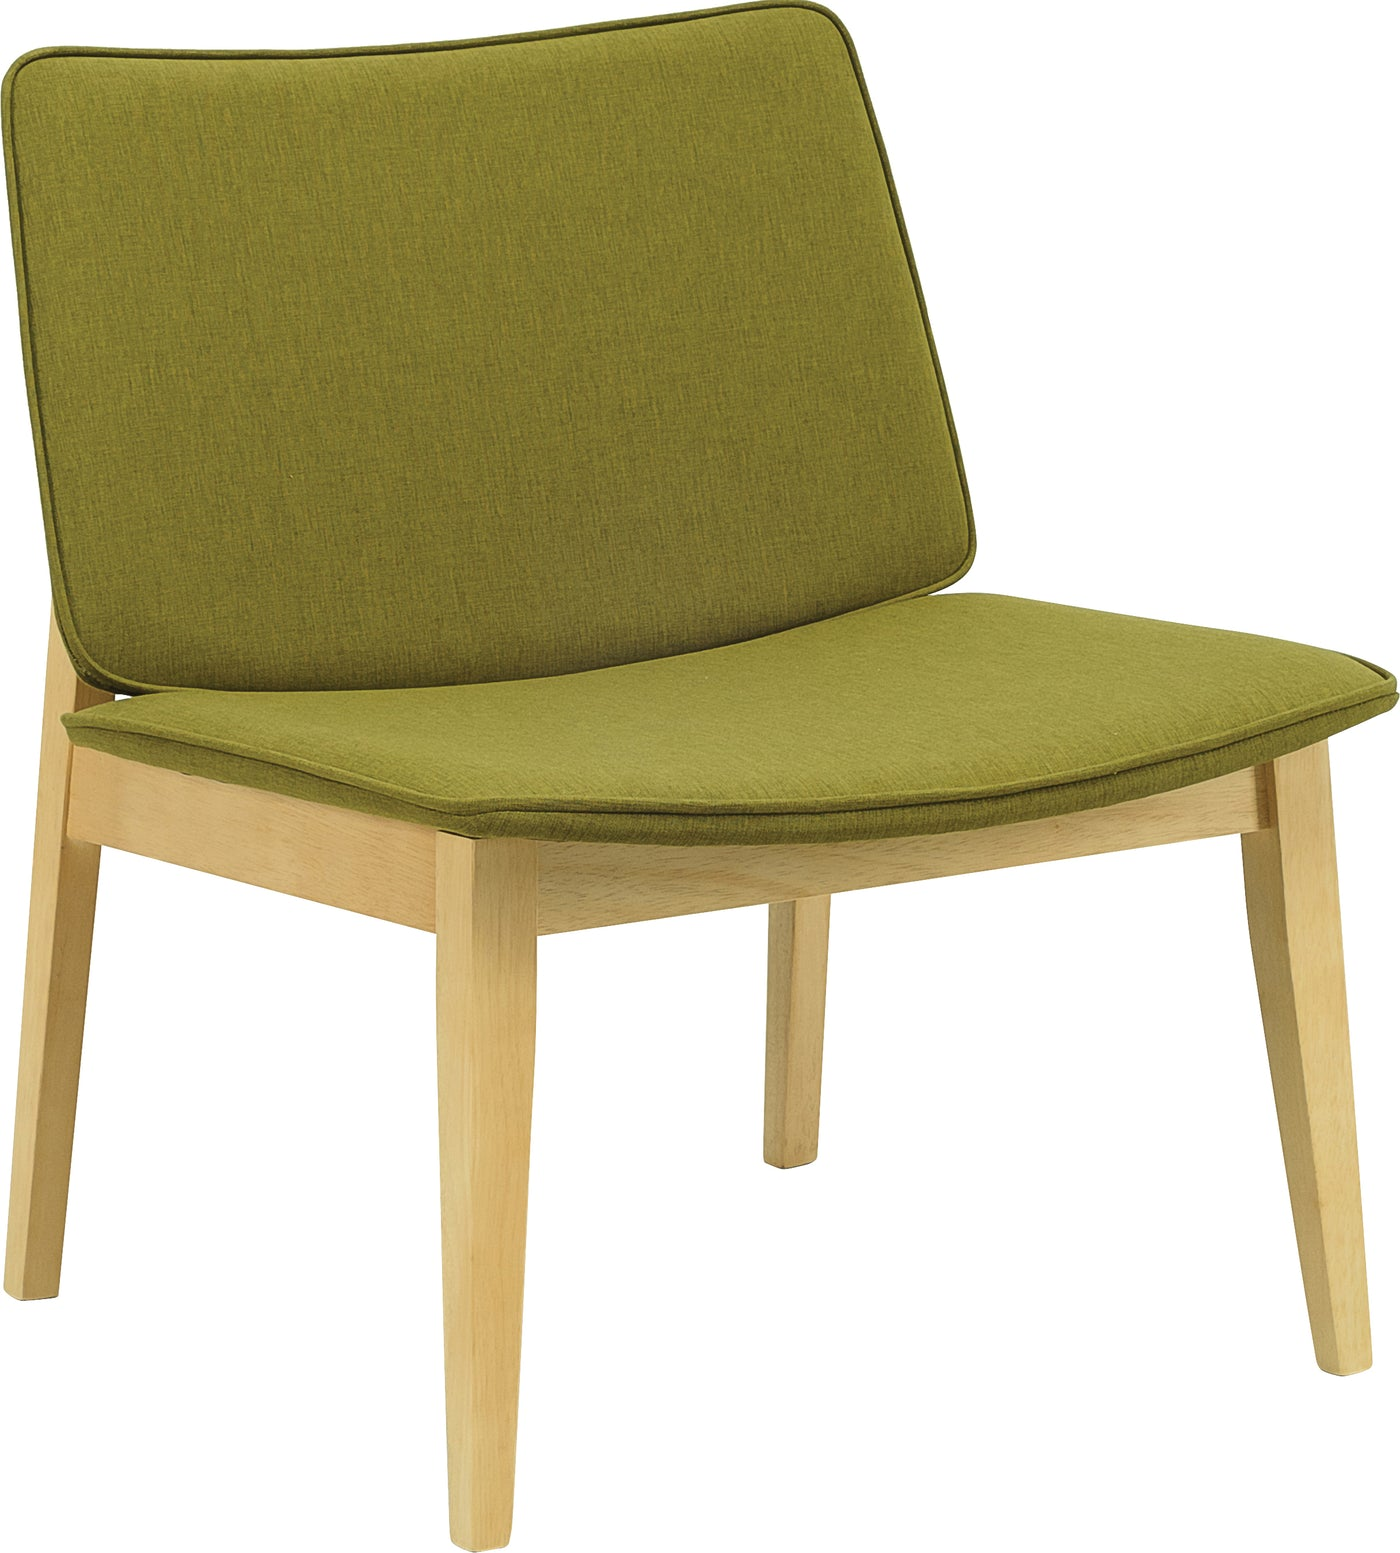 Green Summer Color Armchair Affordable Lounge